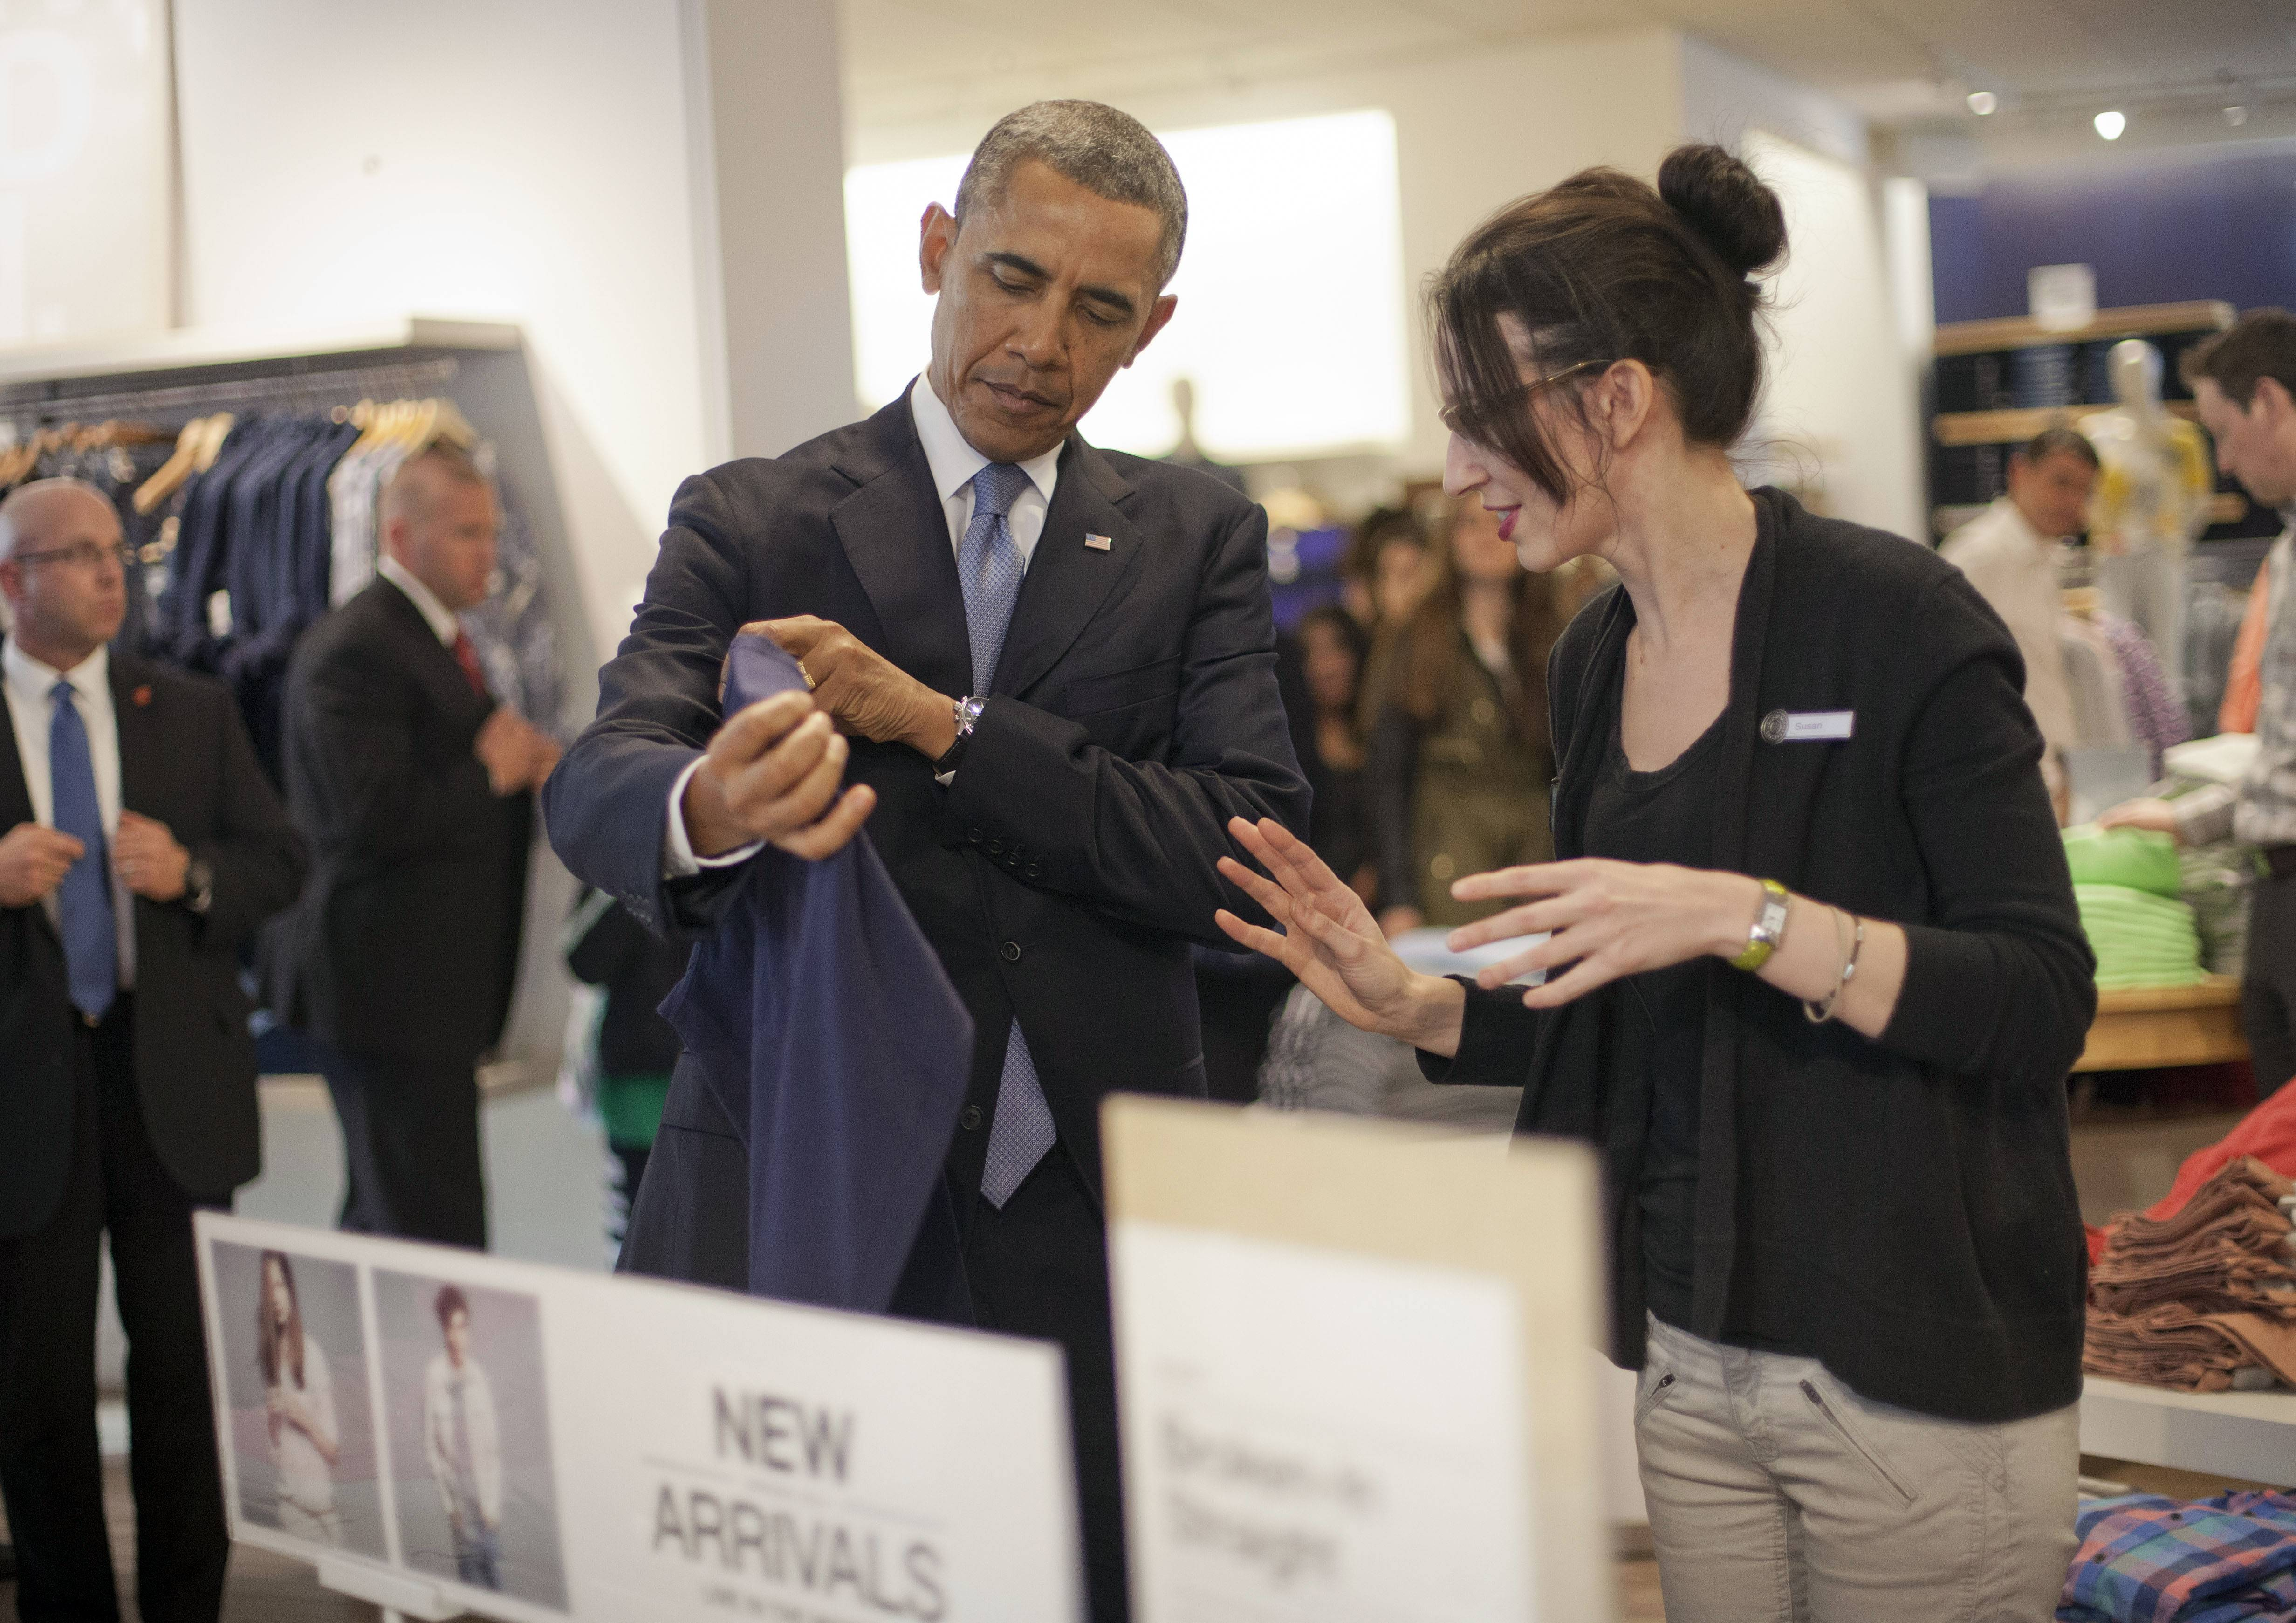 President Barack Obama, left, with the help of store employee Susan Panariello, right, shops at the GAP clothing store in Manhattan during his unannounced visit Tuesday in New York. Obama used the visit to talk about raising the minimum hourly wage standards and applauded the GAP, who earlier in the year announced it was raising minimum wage for its employees.